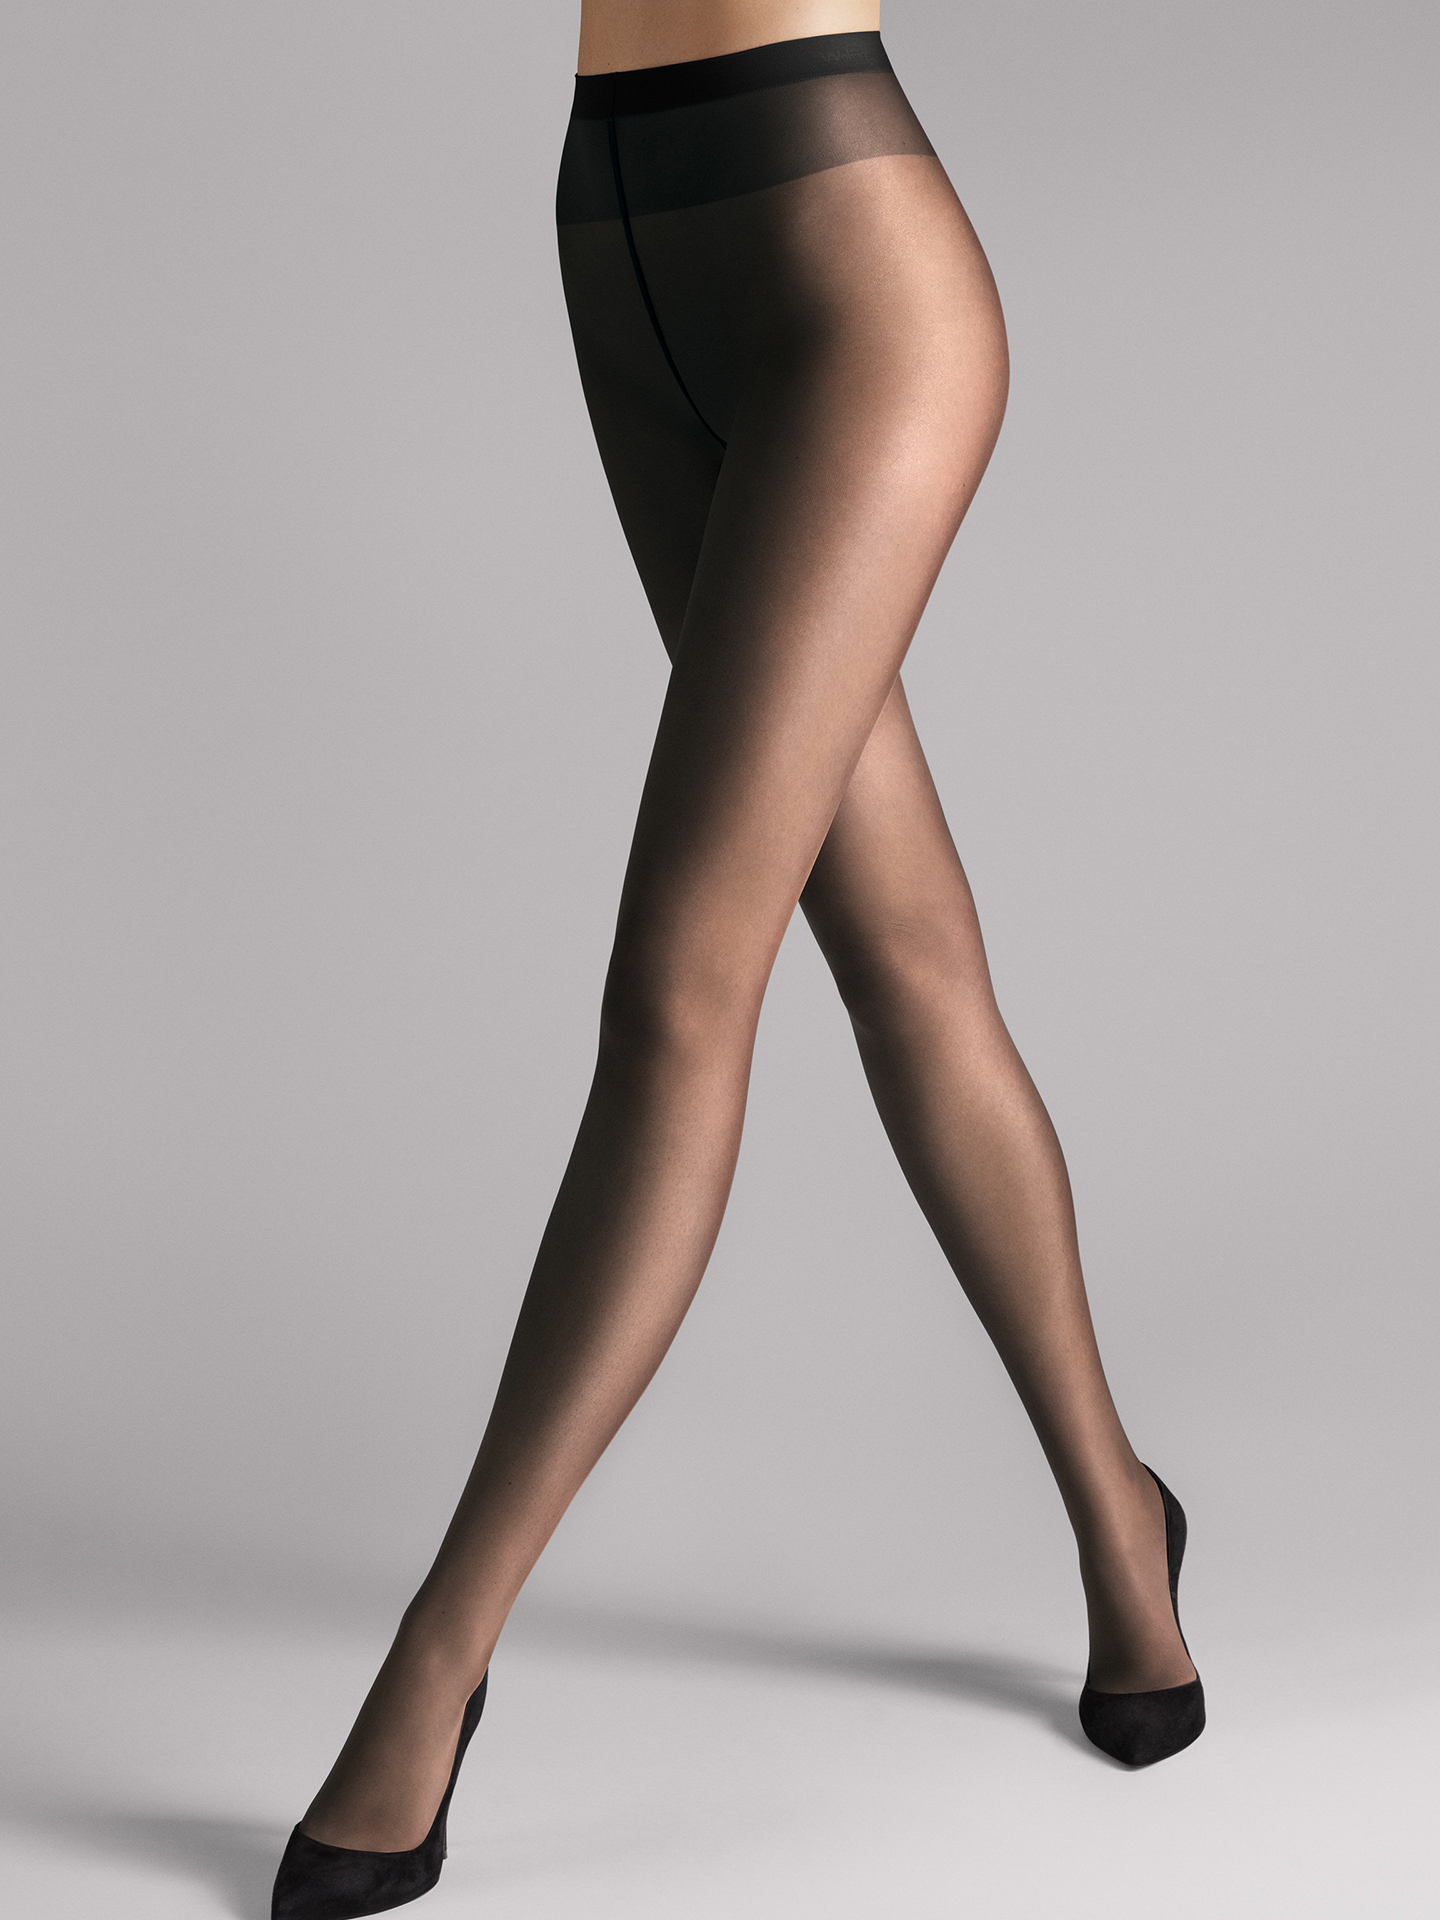 Wolford Apparel & Accessories > Clothing > Collant Sheer 15 - 7005 - XS